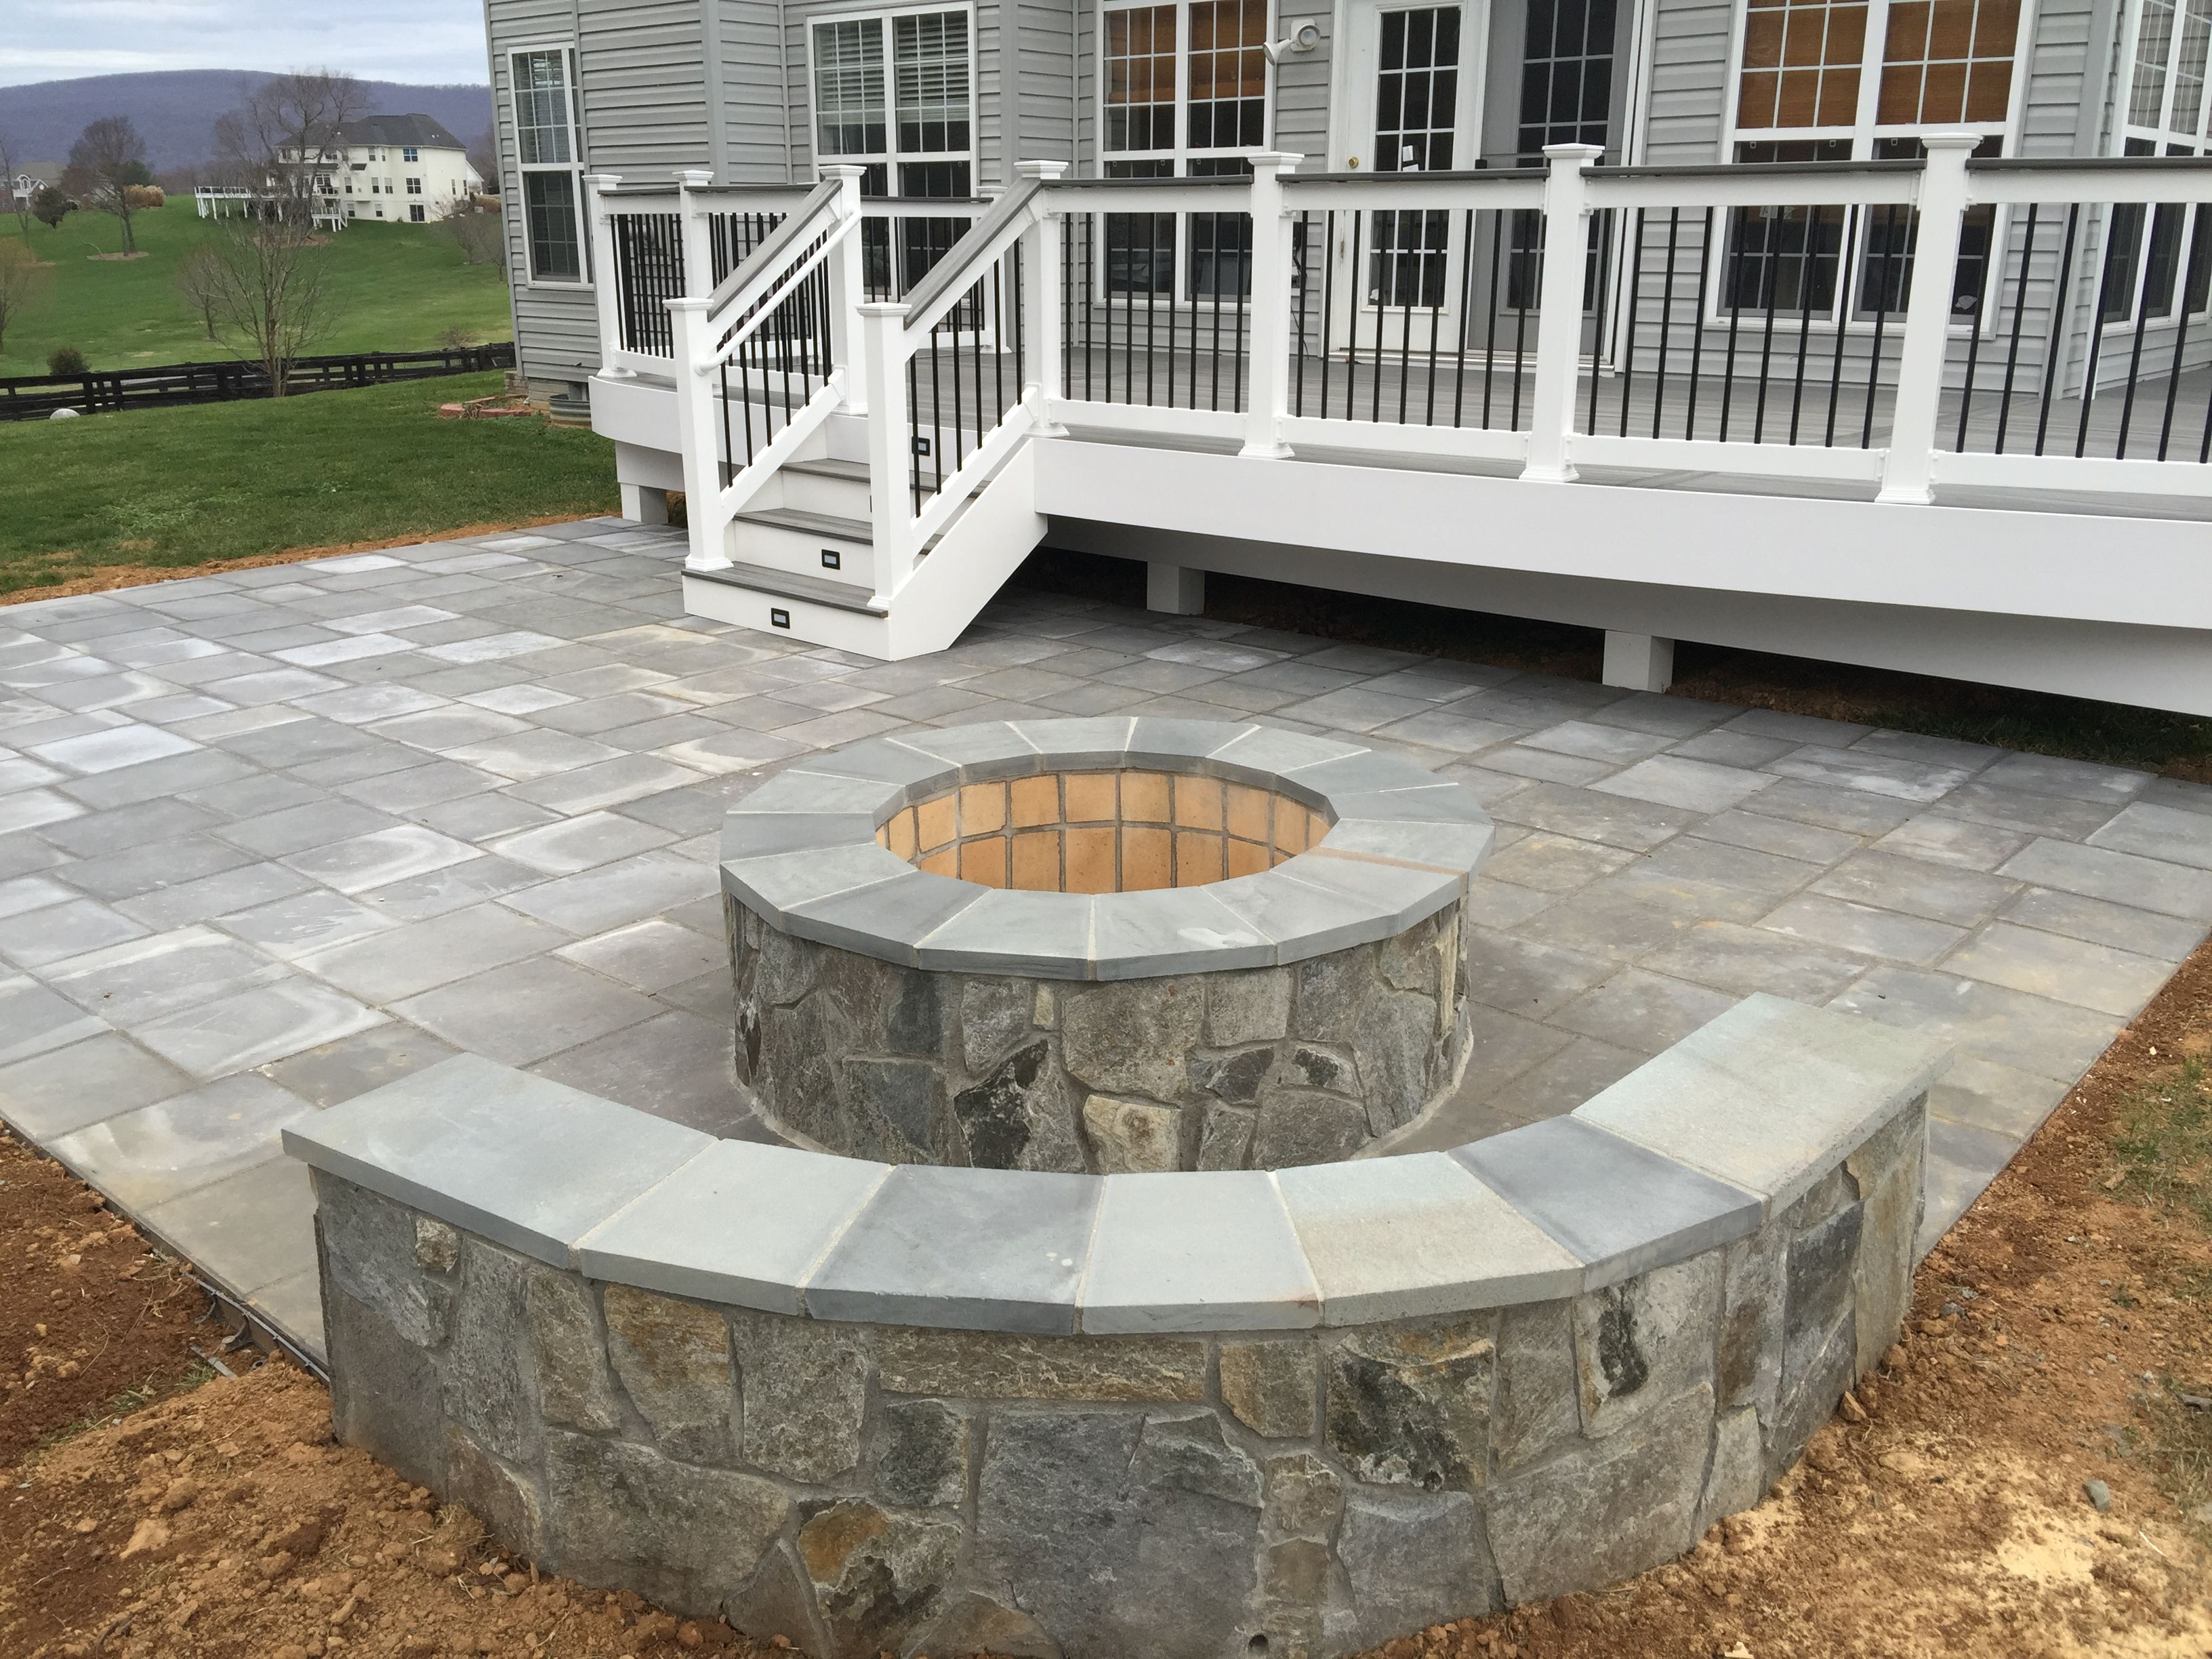 A beautiful paver patio with stone seating walls and a for Small stone patio ideas